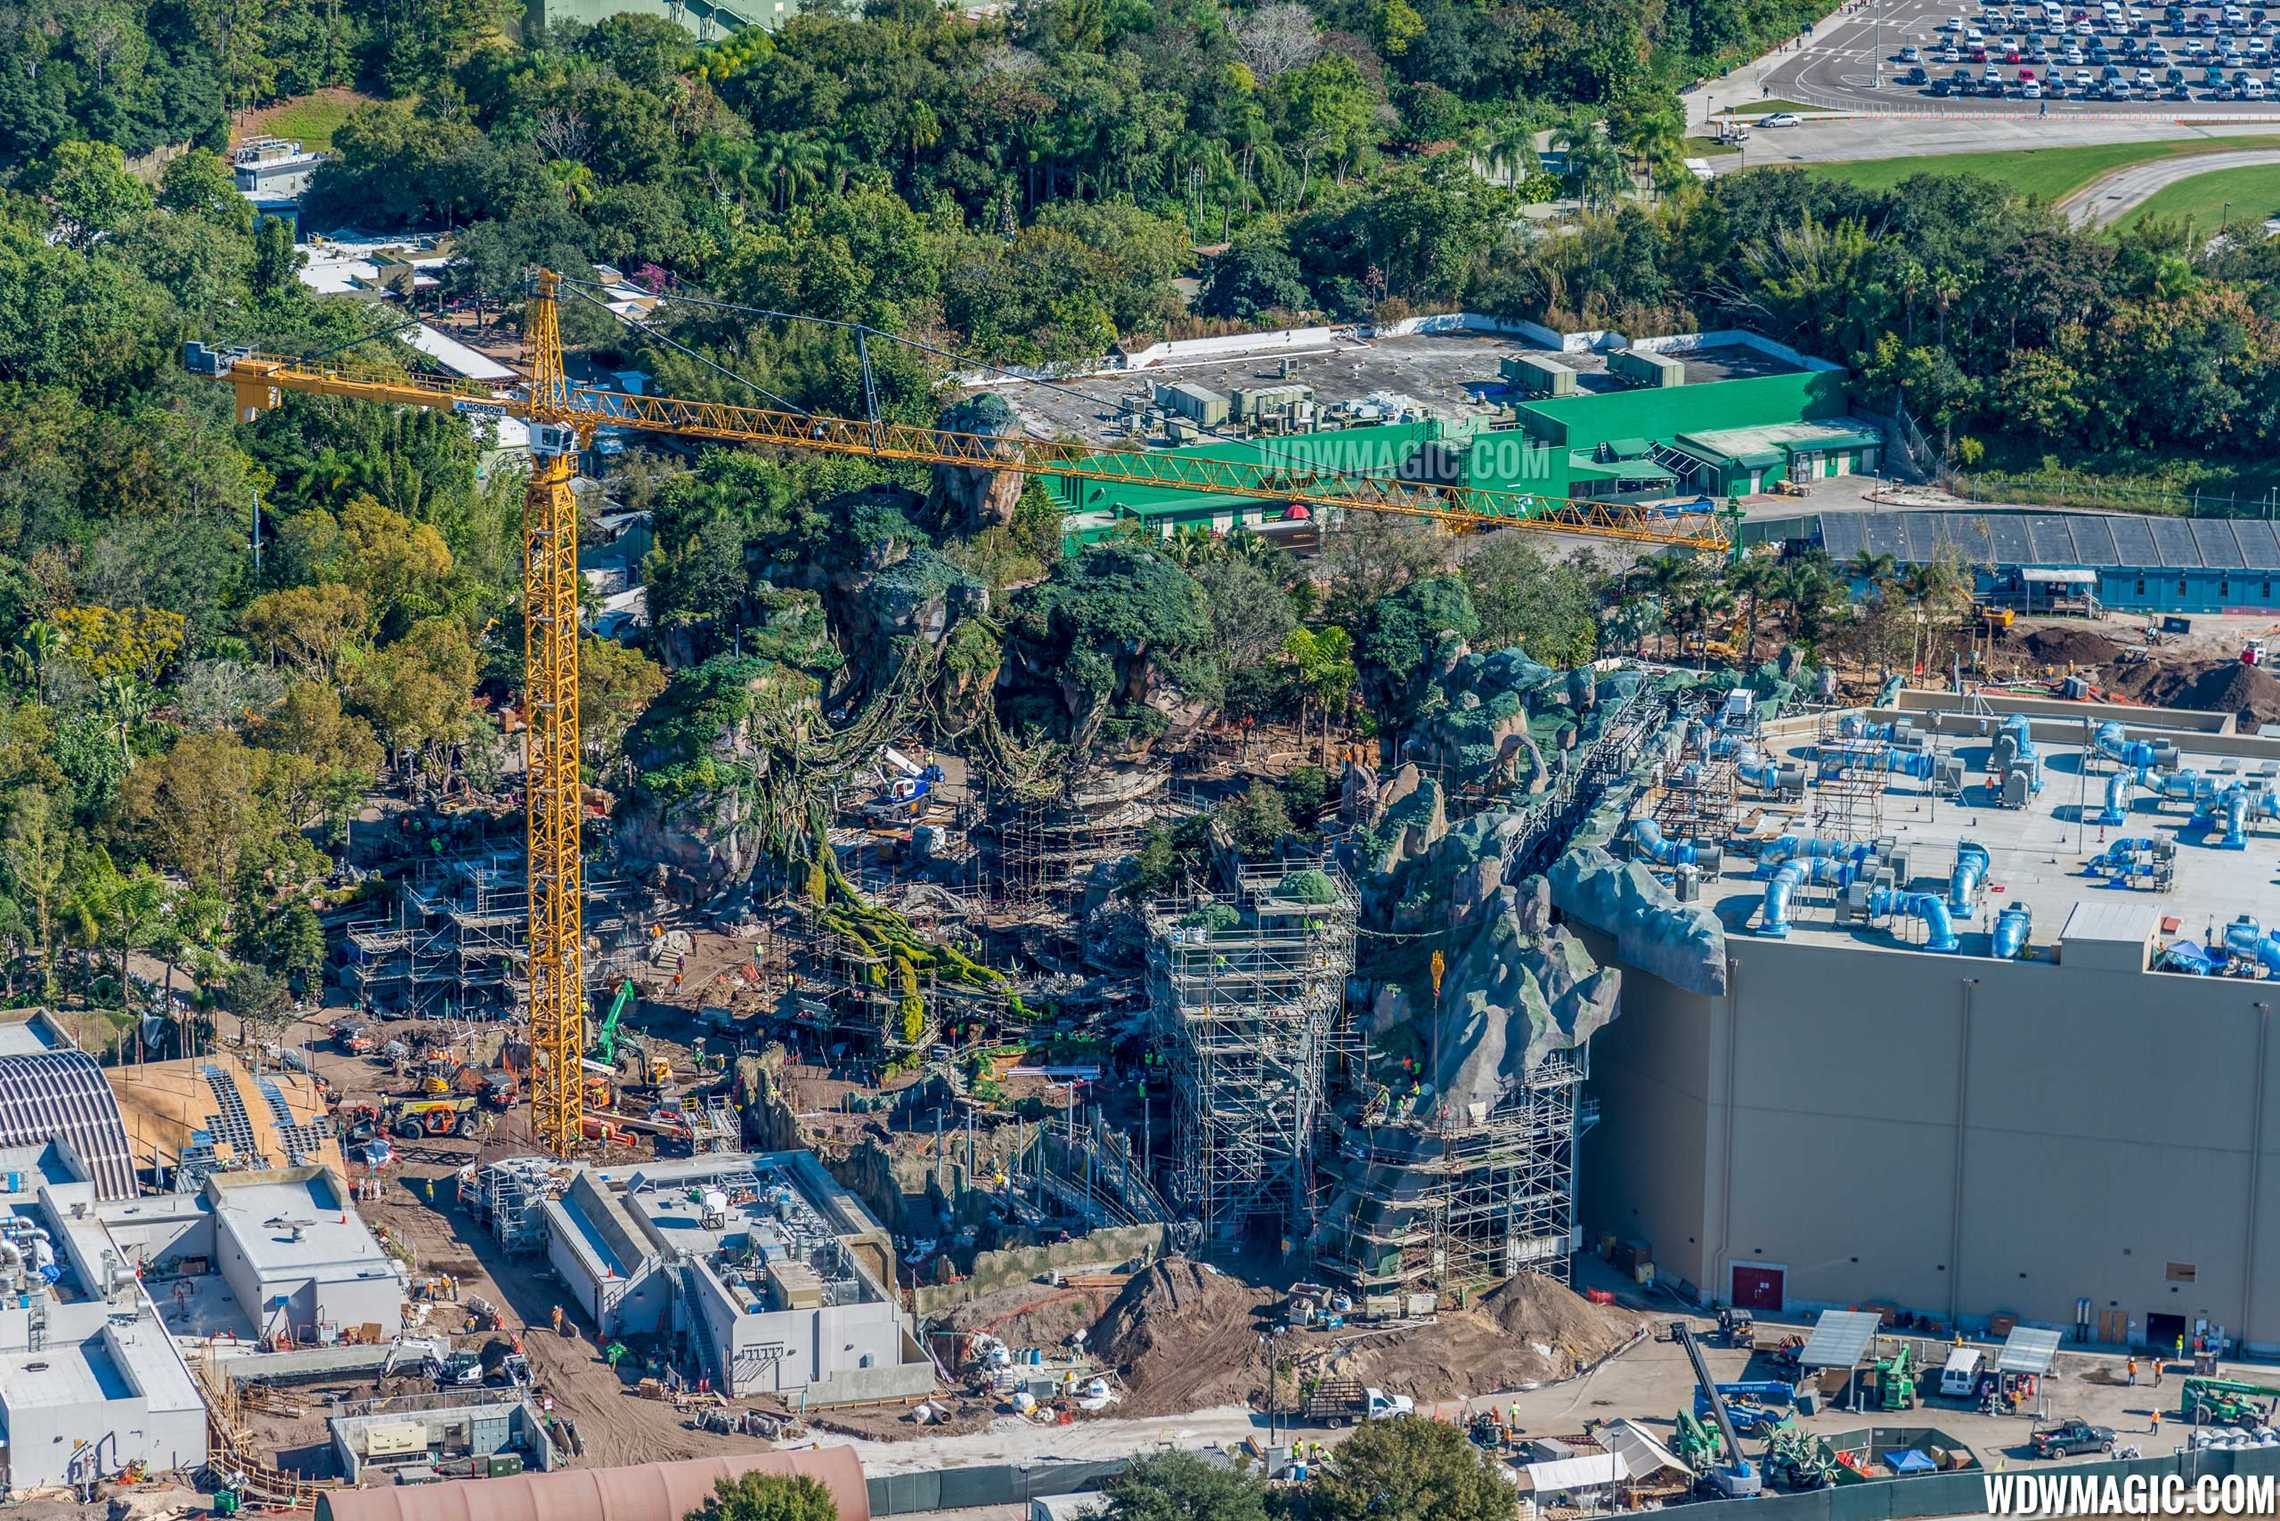 Photo by CJ Berzin @BerzinPhotography. 'Pandora - The World of Avatar' aerial view.